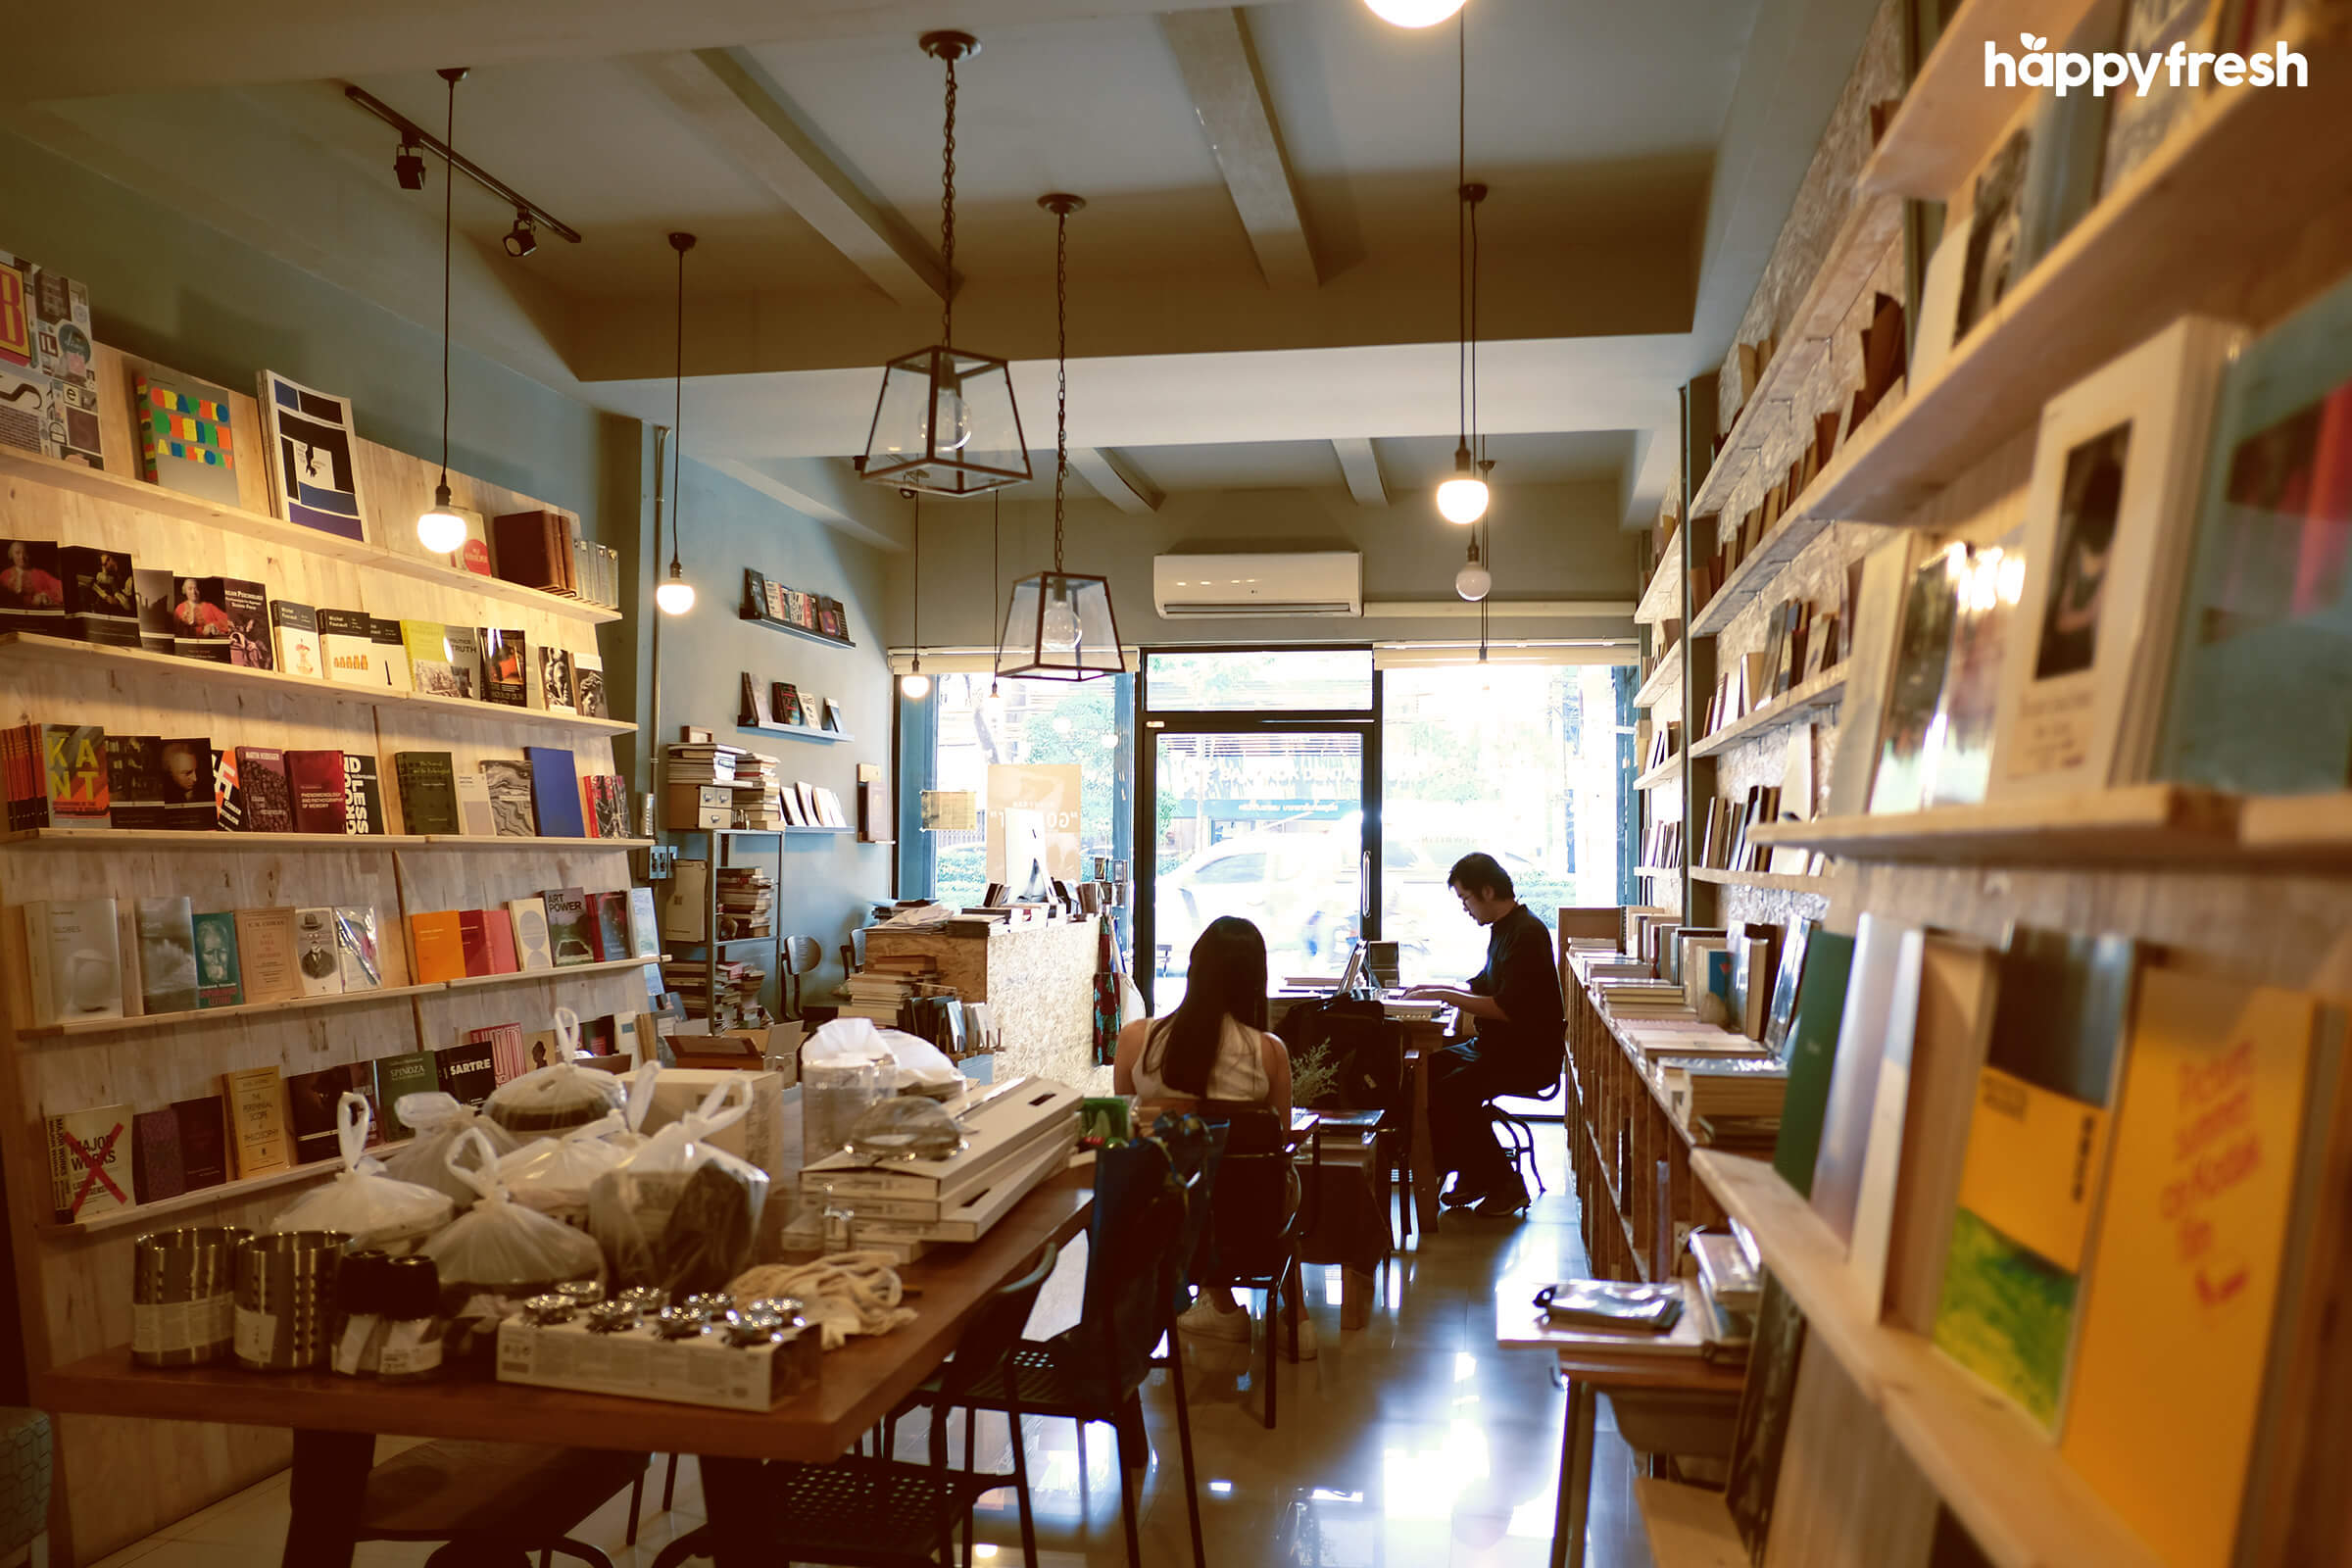 HappyFresh_Review_5_Cafes_Bookstores_In_Bangkok_Books_And_Belongings_1